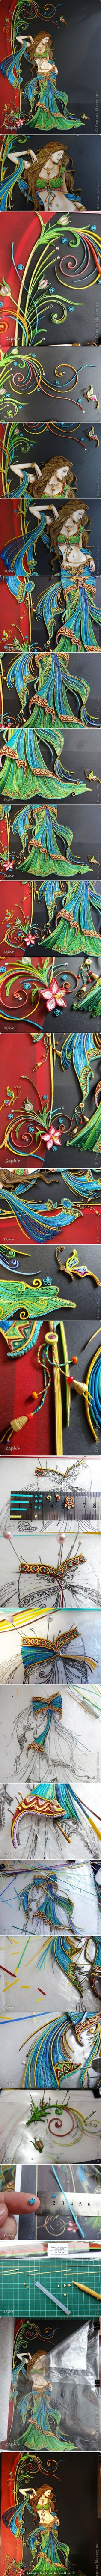 Wow! Detailed intricate quilling! Beautiful..